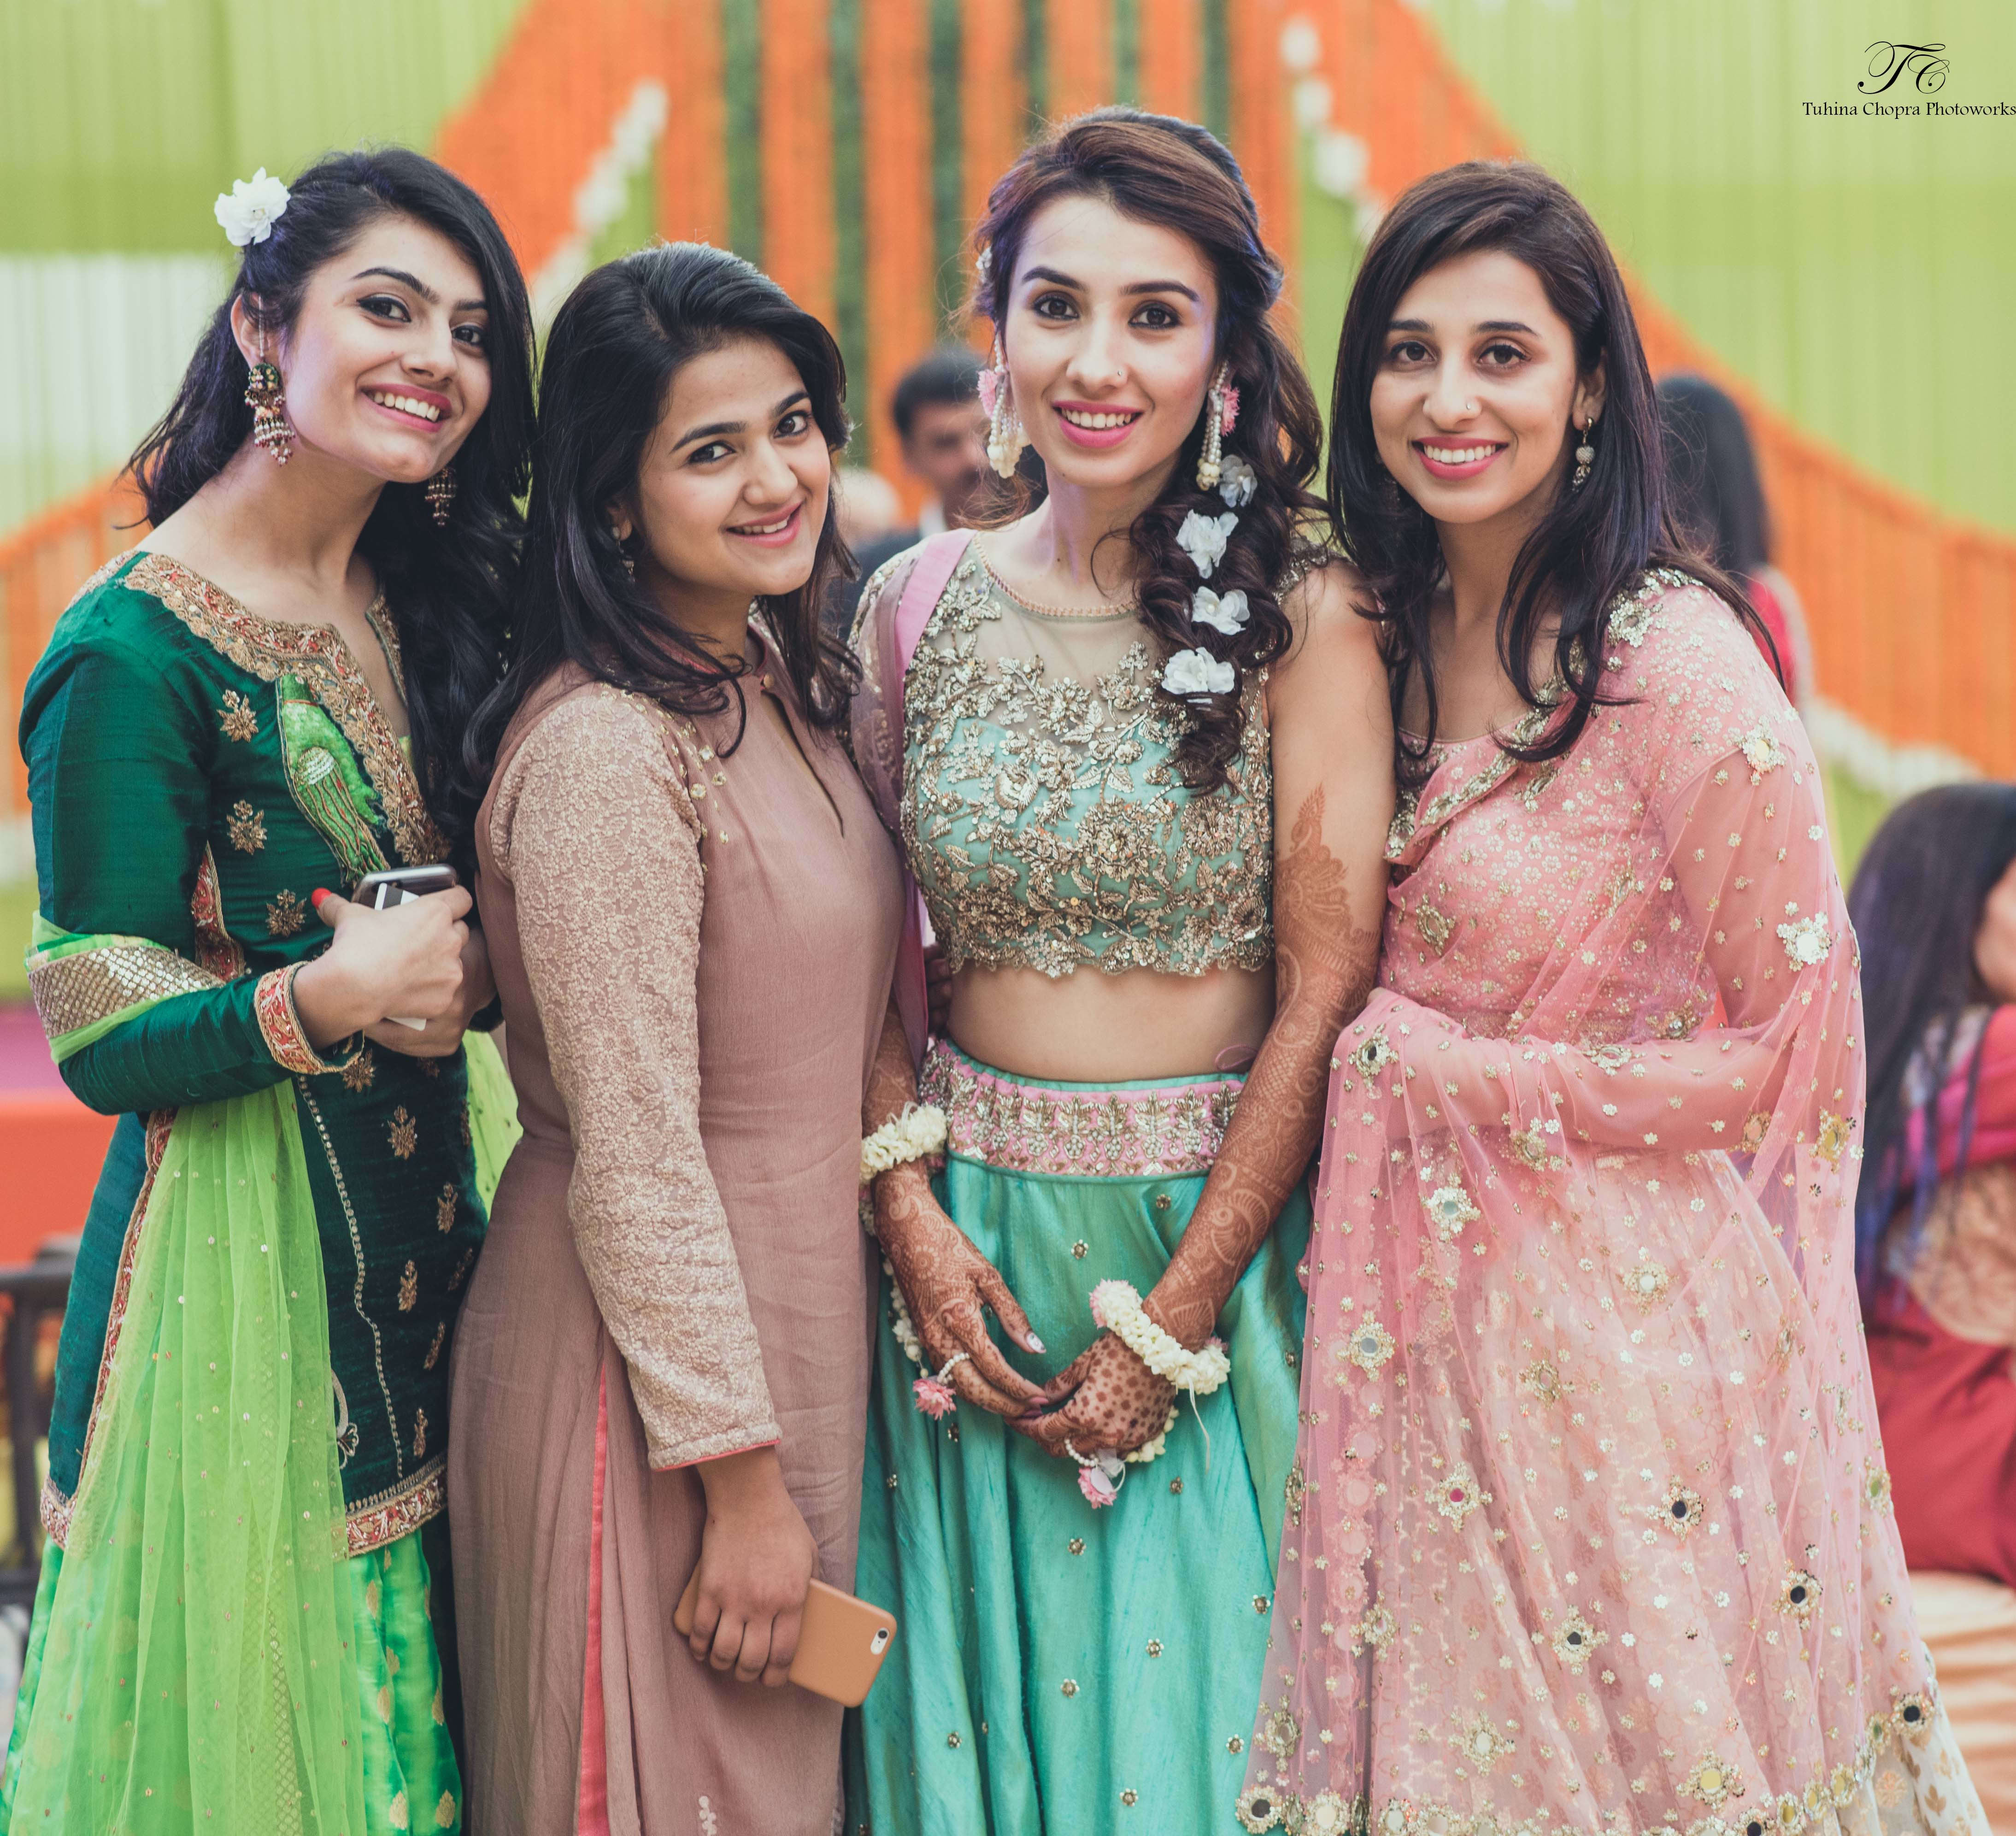 bride and her bridesmaids:tuhina chopra photoworks